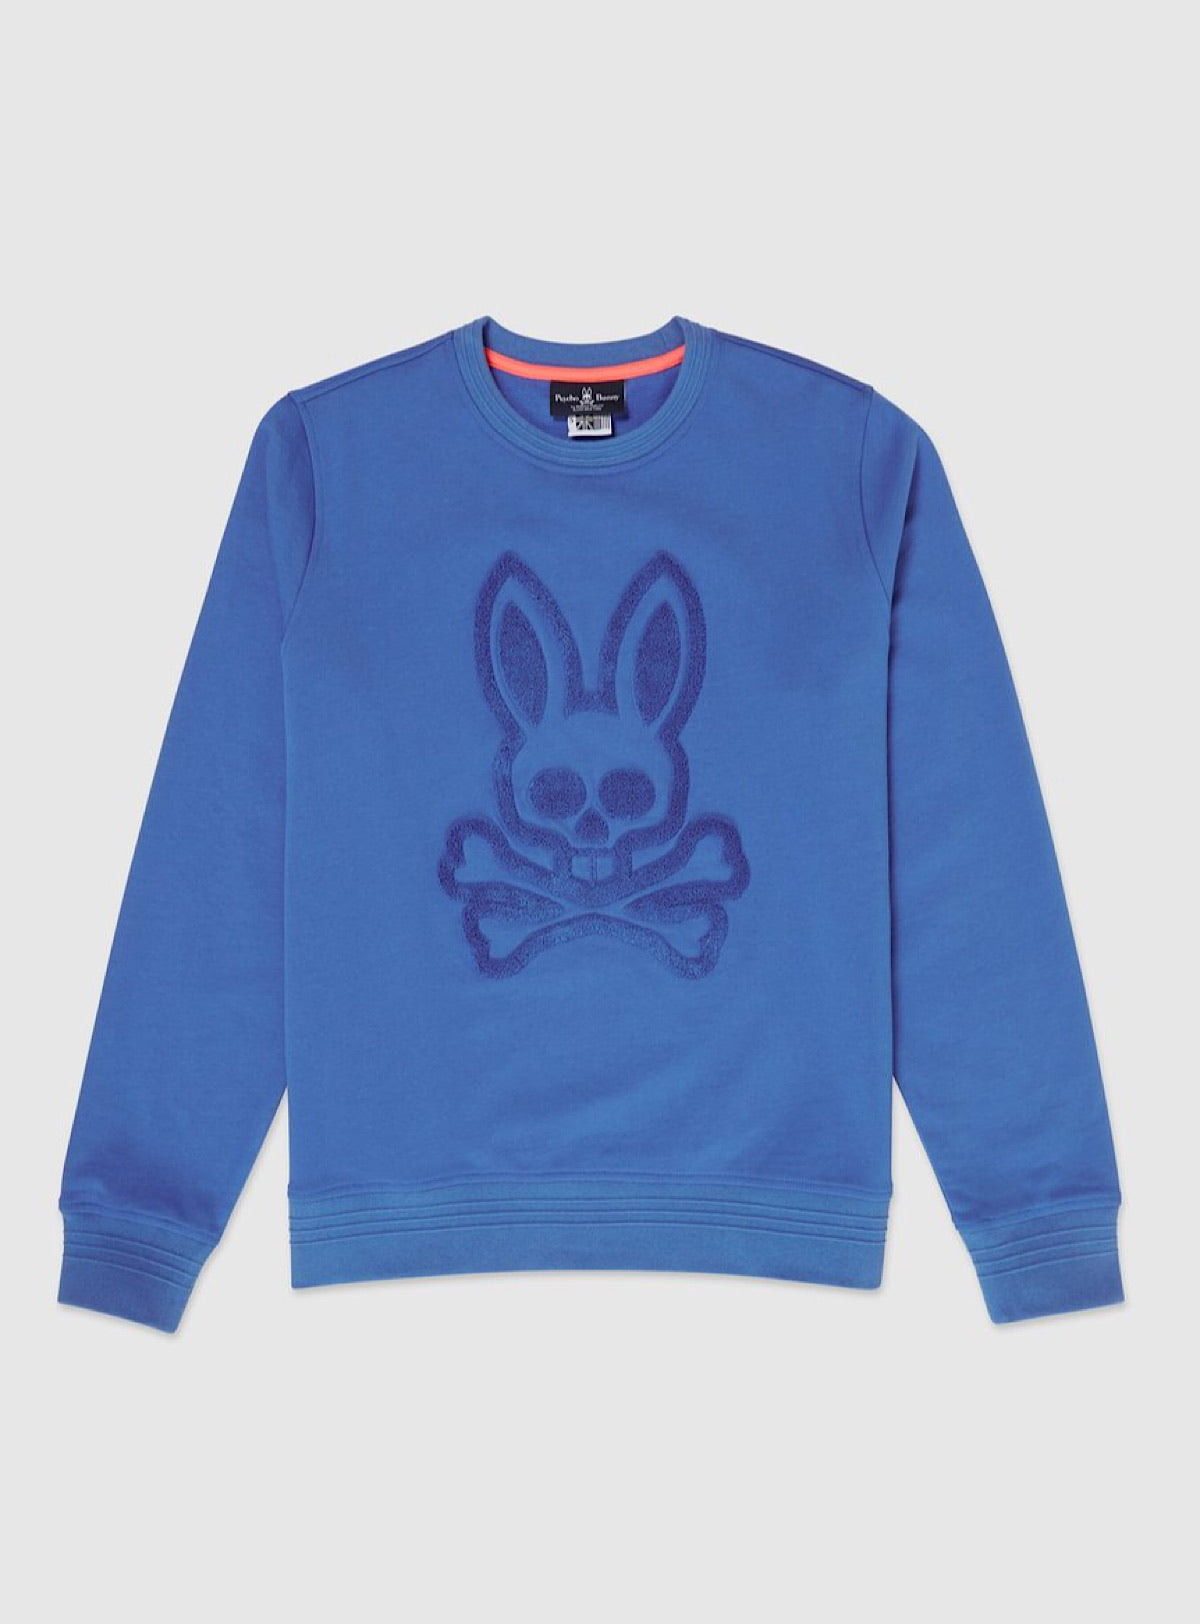 Psycho Bunny Sweater - Ellsworth - Royal